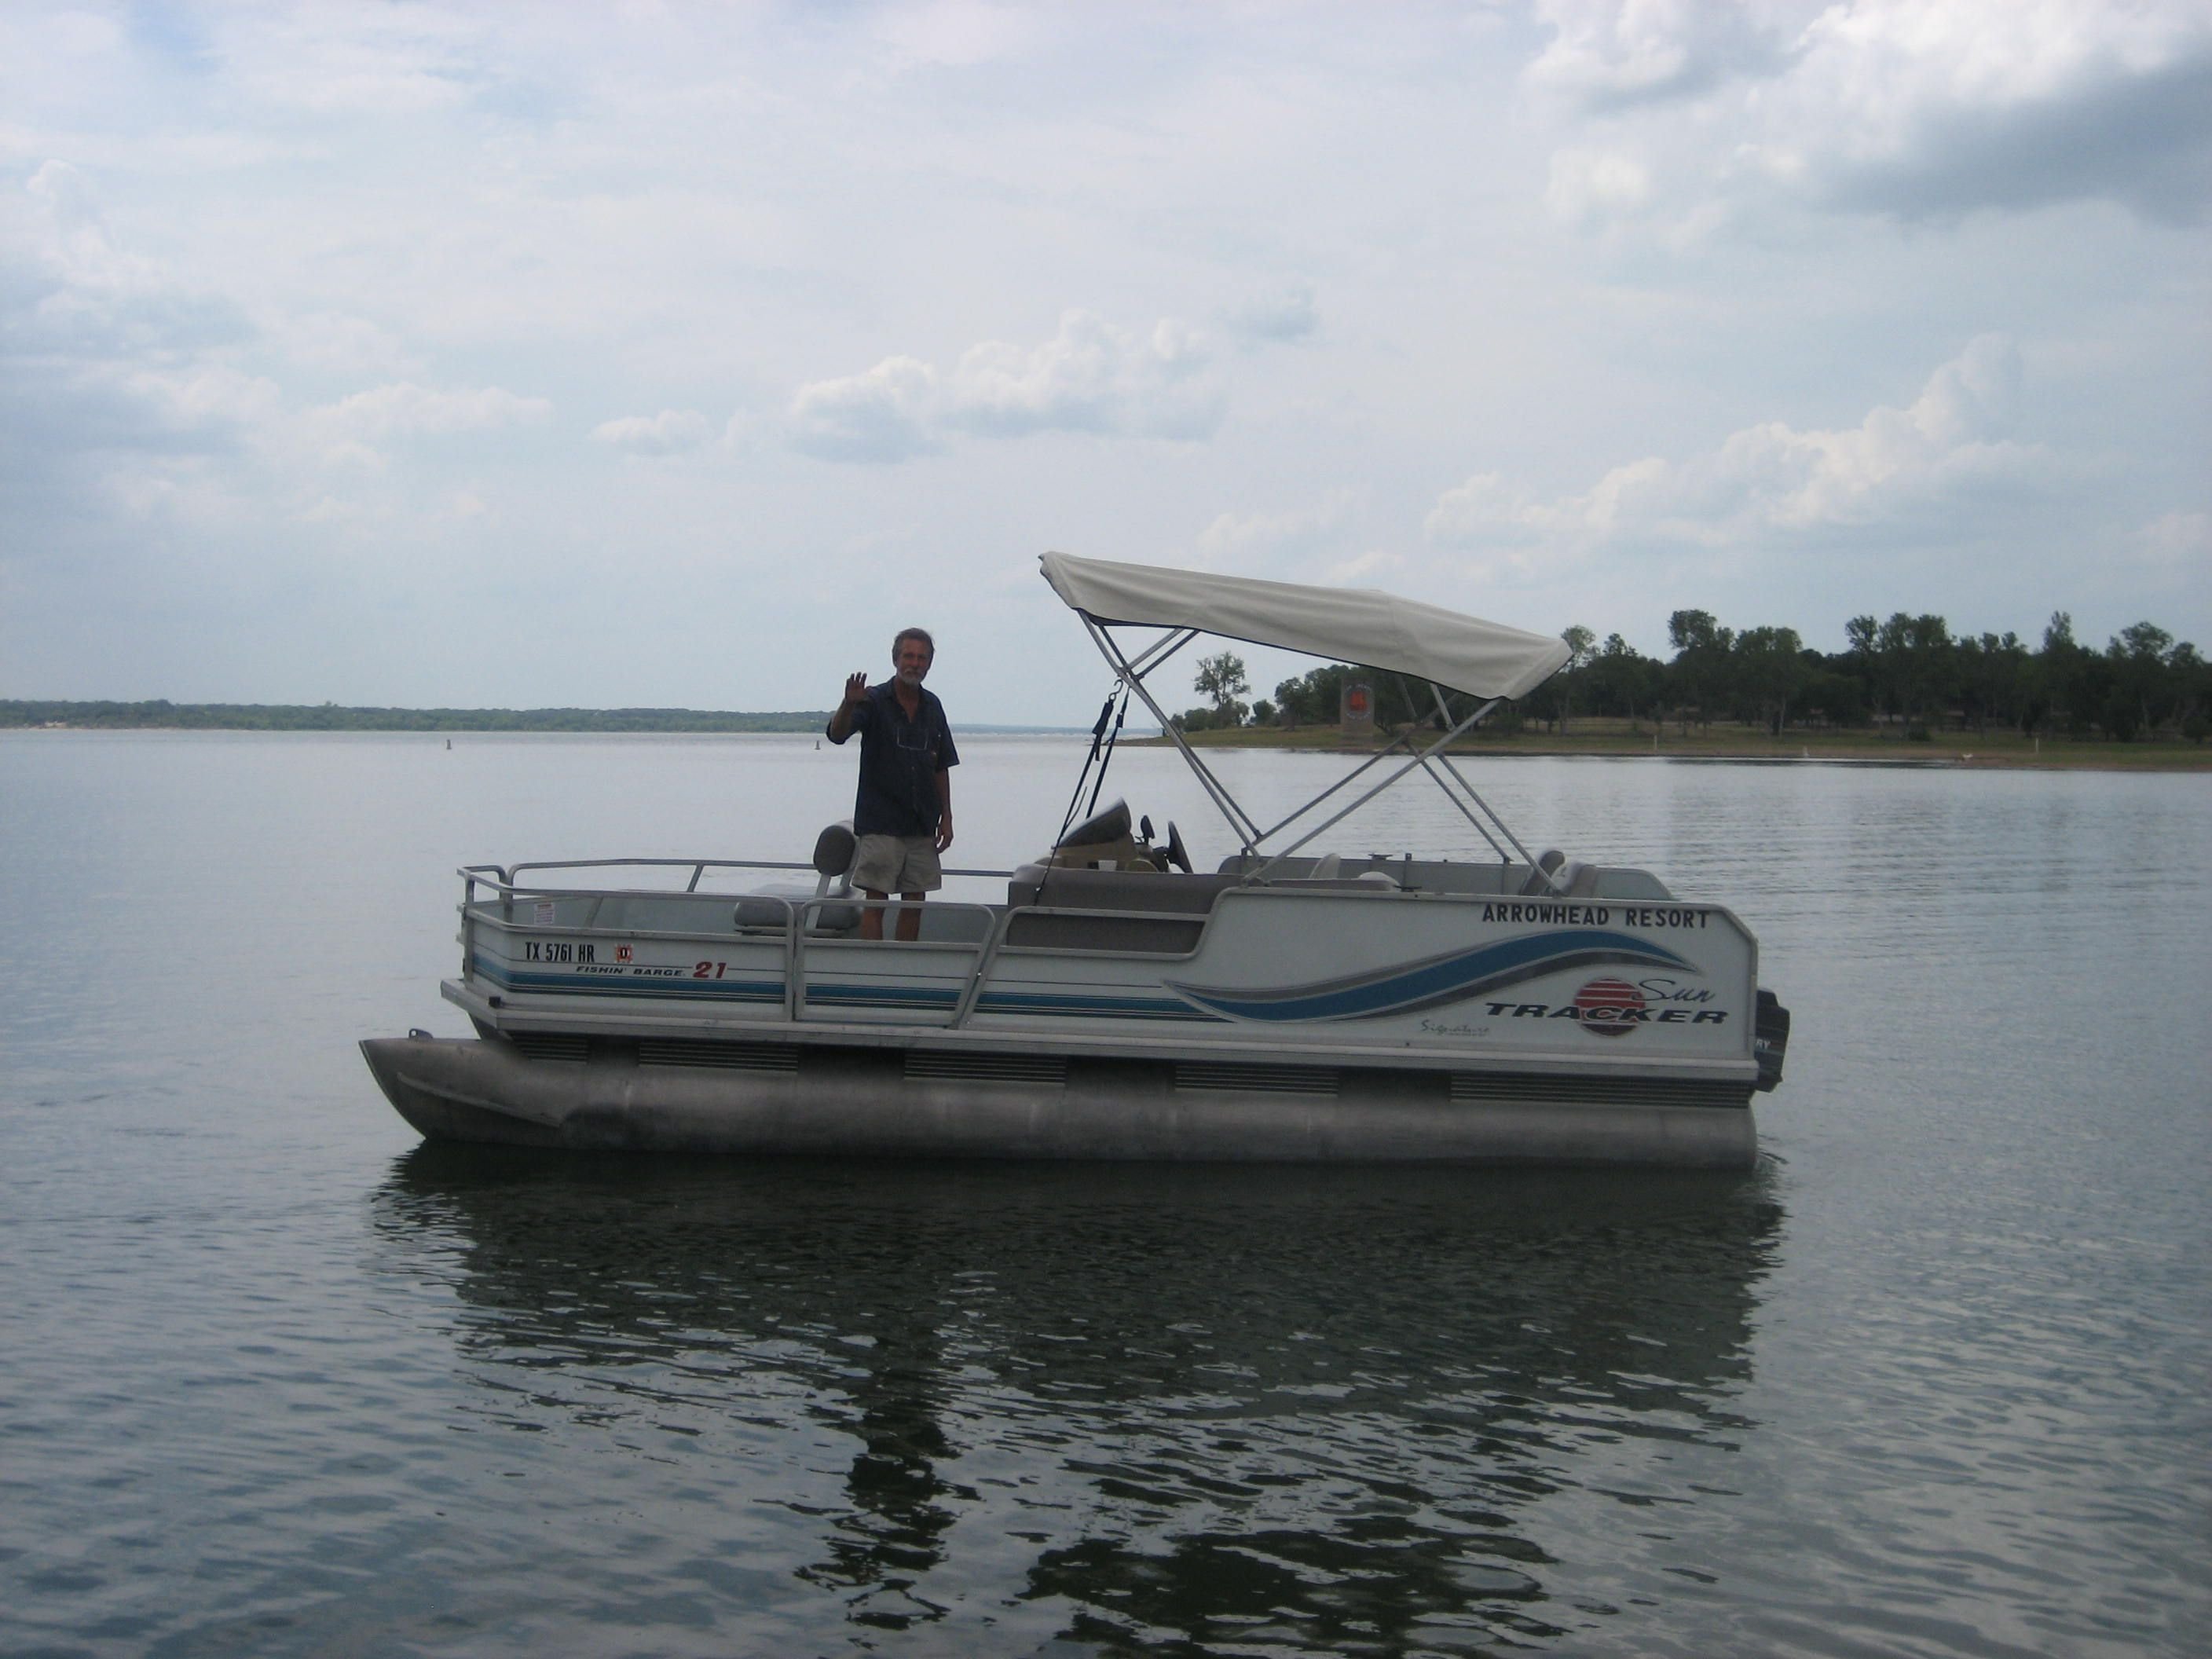 Ponton Boat Rentals You Need To Rent One Of These Pontoon Boats For A Fun Day On The Lake 2019 Texas Outside Boat Rental Resort Cabins Pontoon Boat